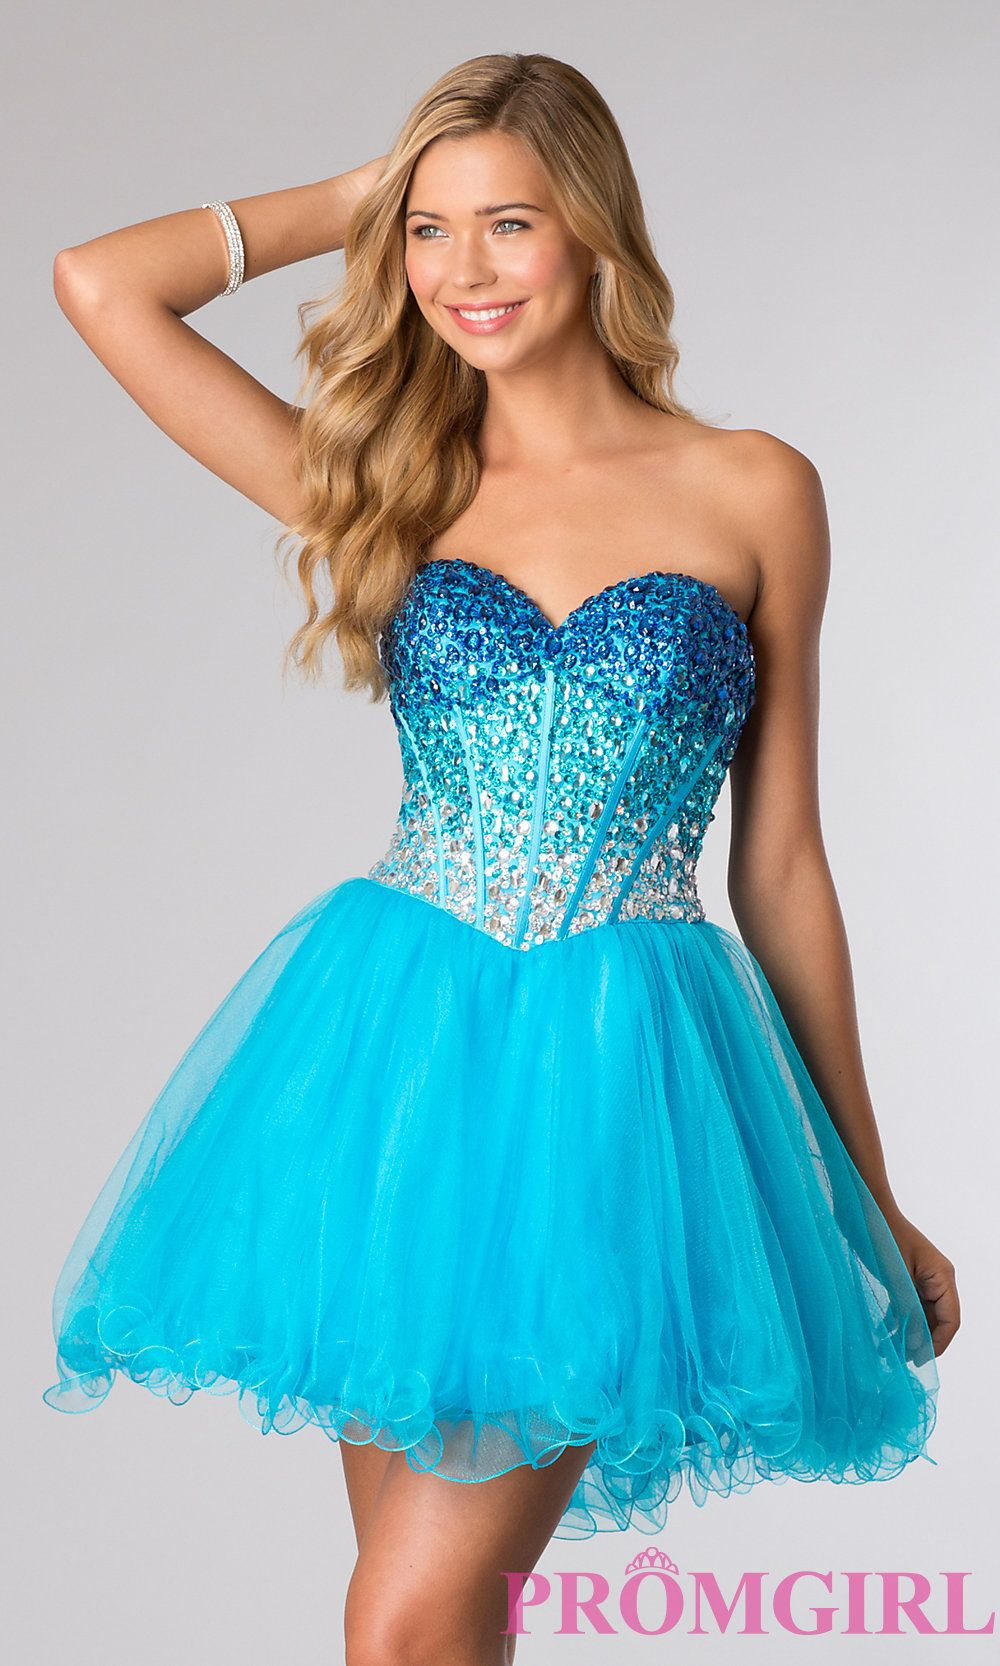 ALYCE Sweet 16 Dress Style #3635 in blue | Prom :) | Pinterest ...